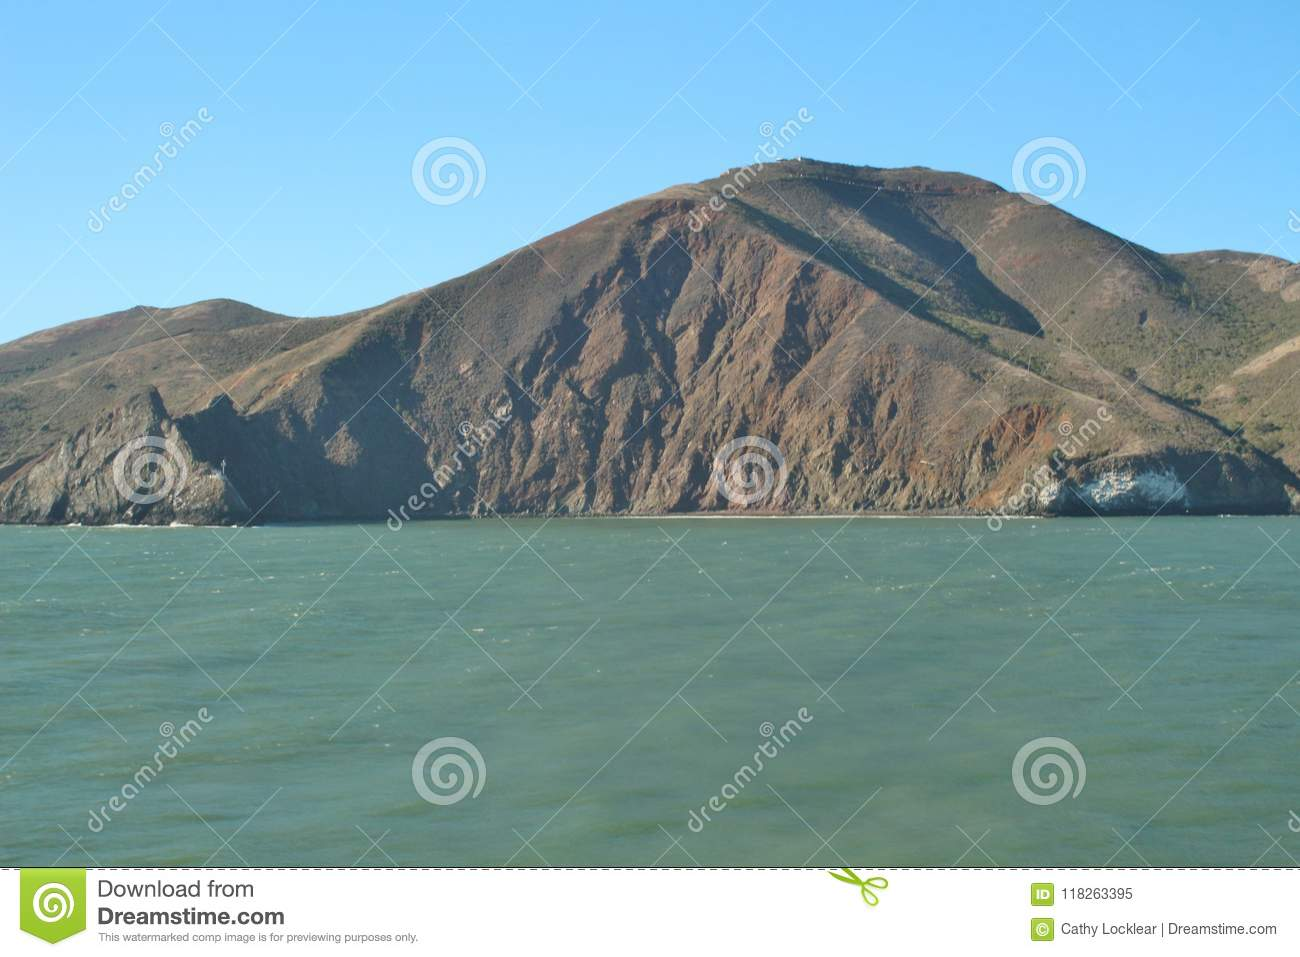 Landscape scene of mountains and ocean along the San Francisco Bay Area - Landscape Scene Of Mountains And Ocean Along The San Francisco Bay